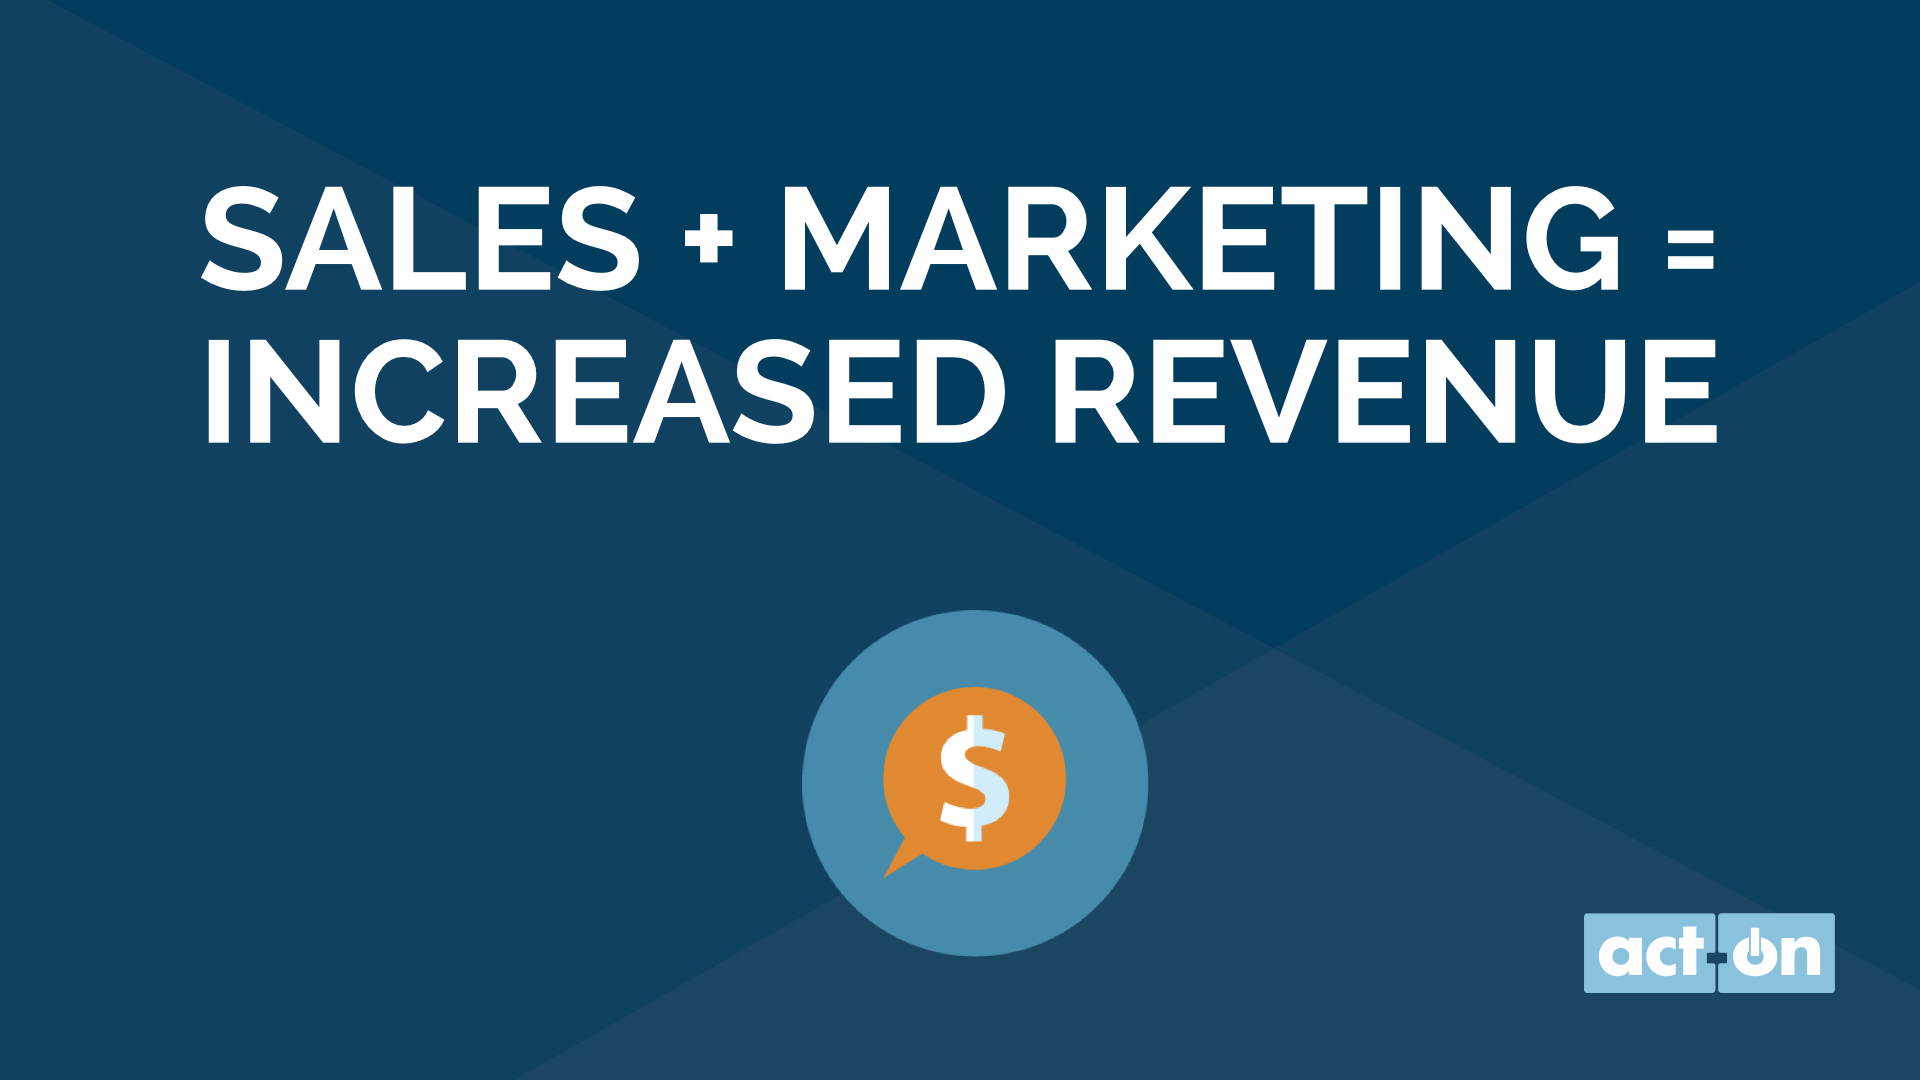 Sales + Marketing = Increased Revenue